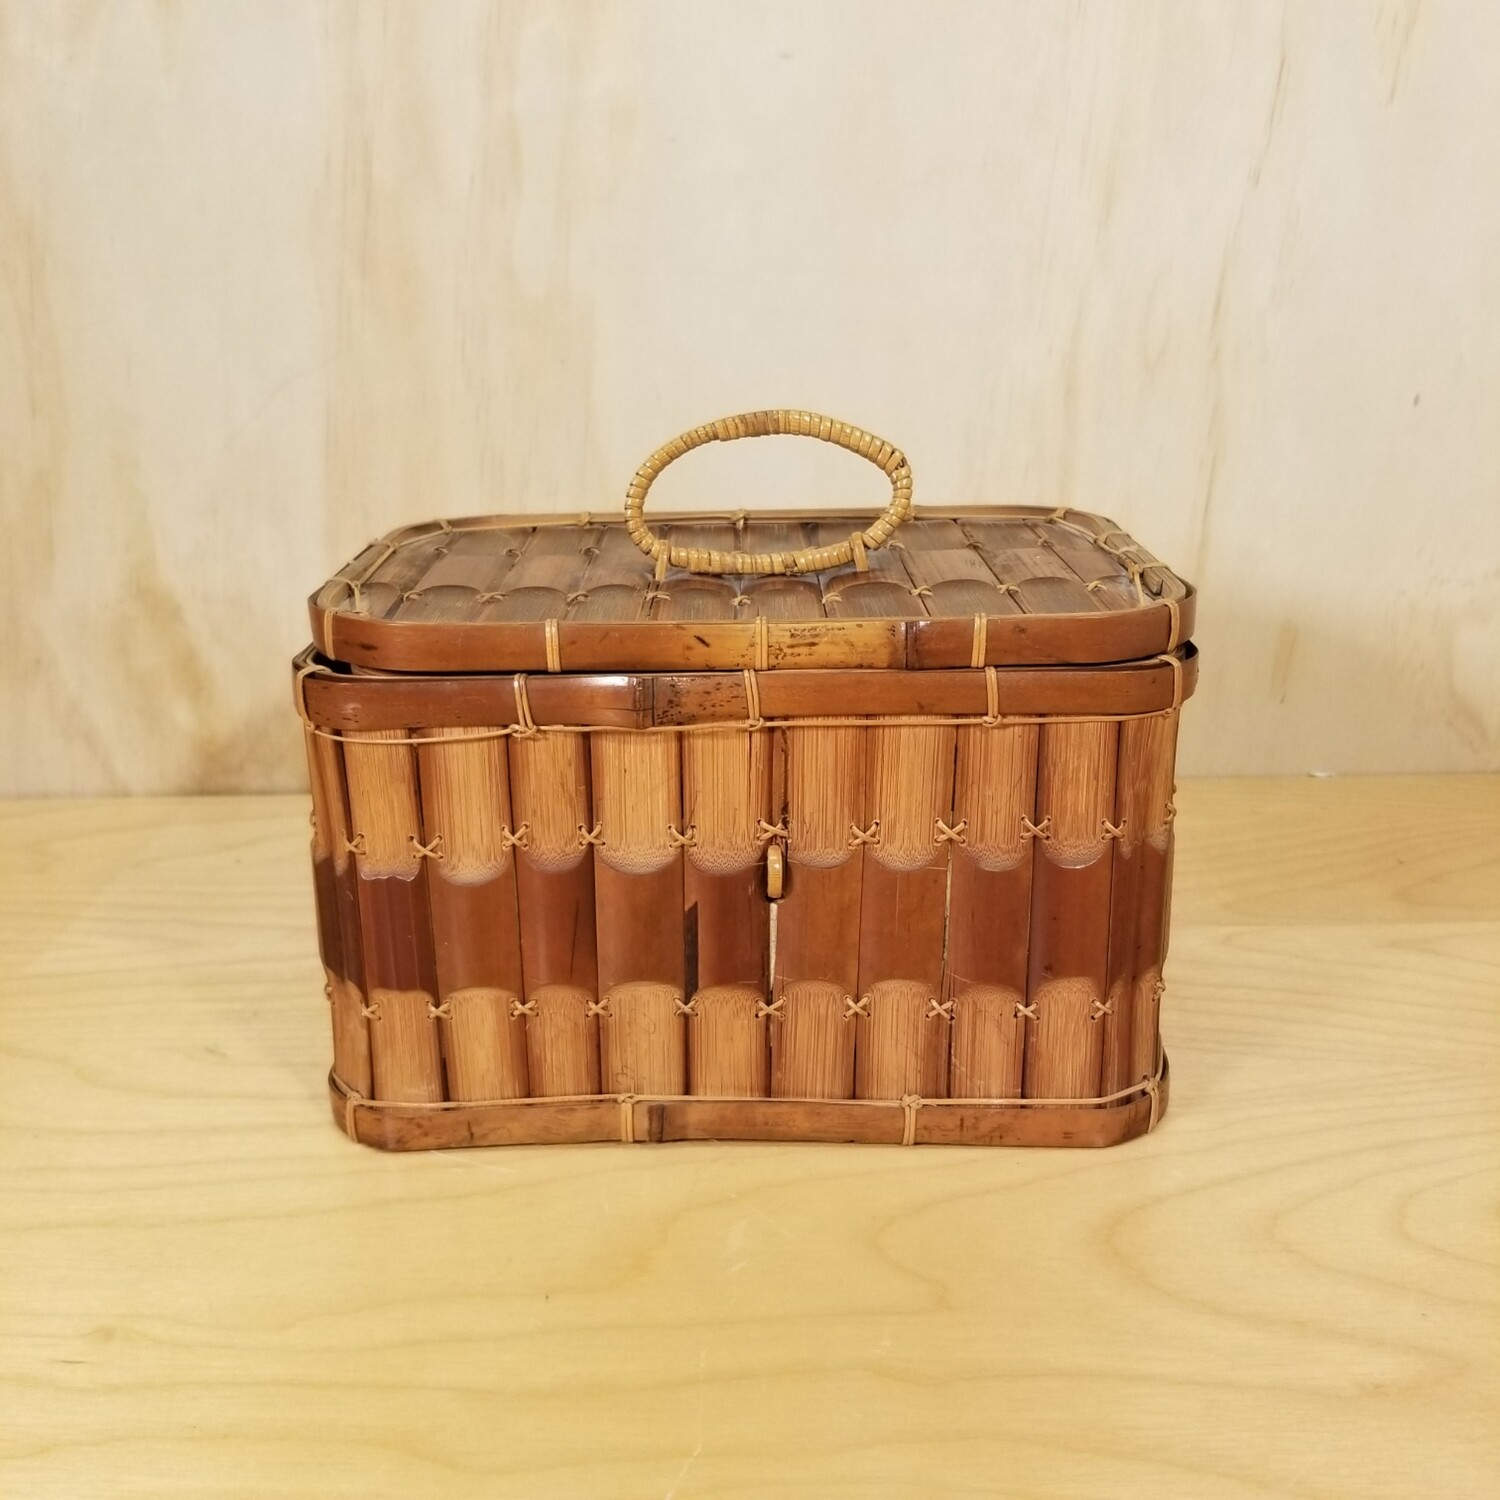 Reed Basket with Lid